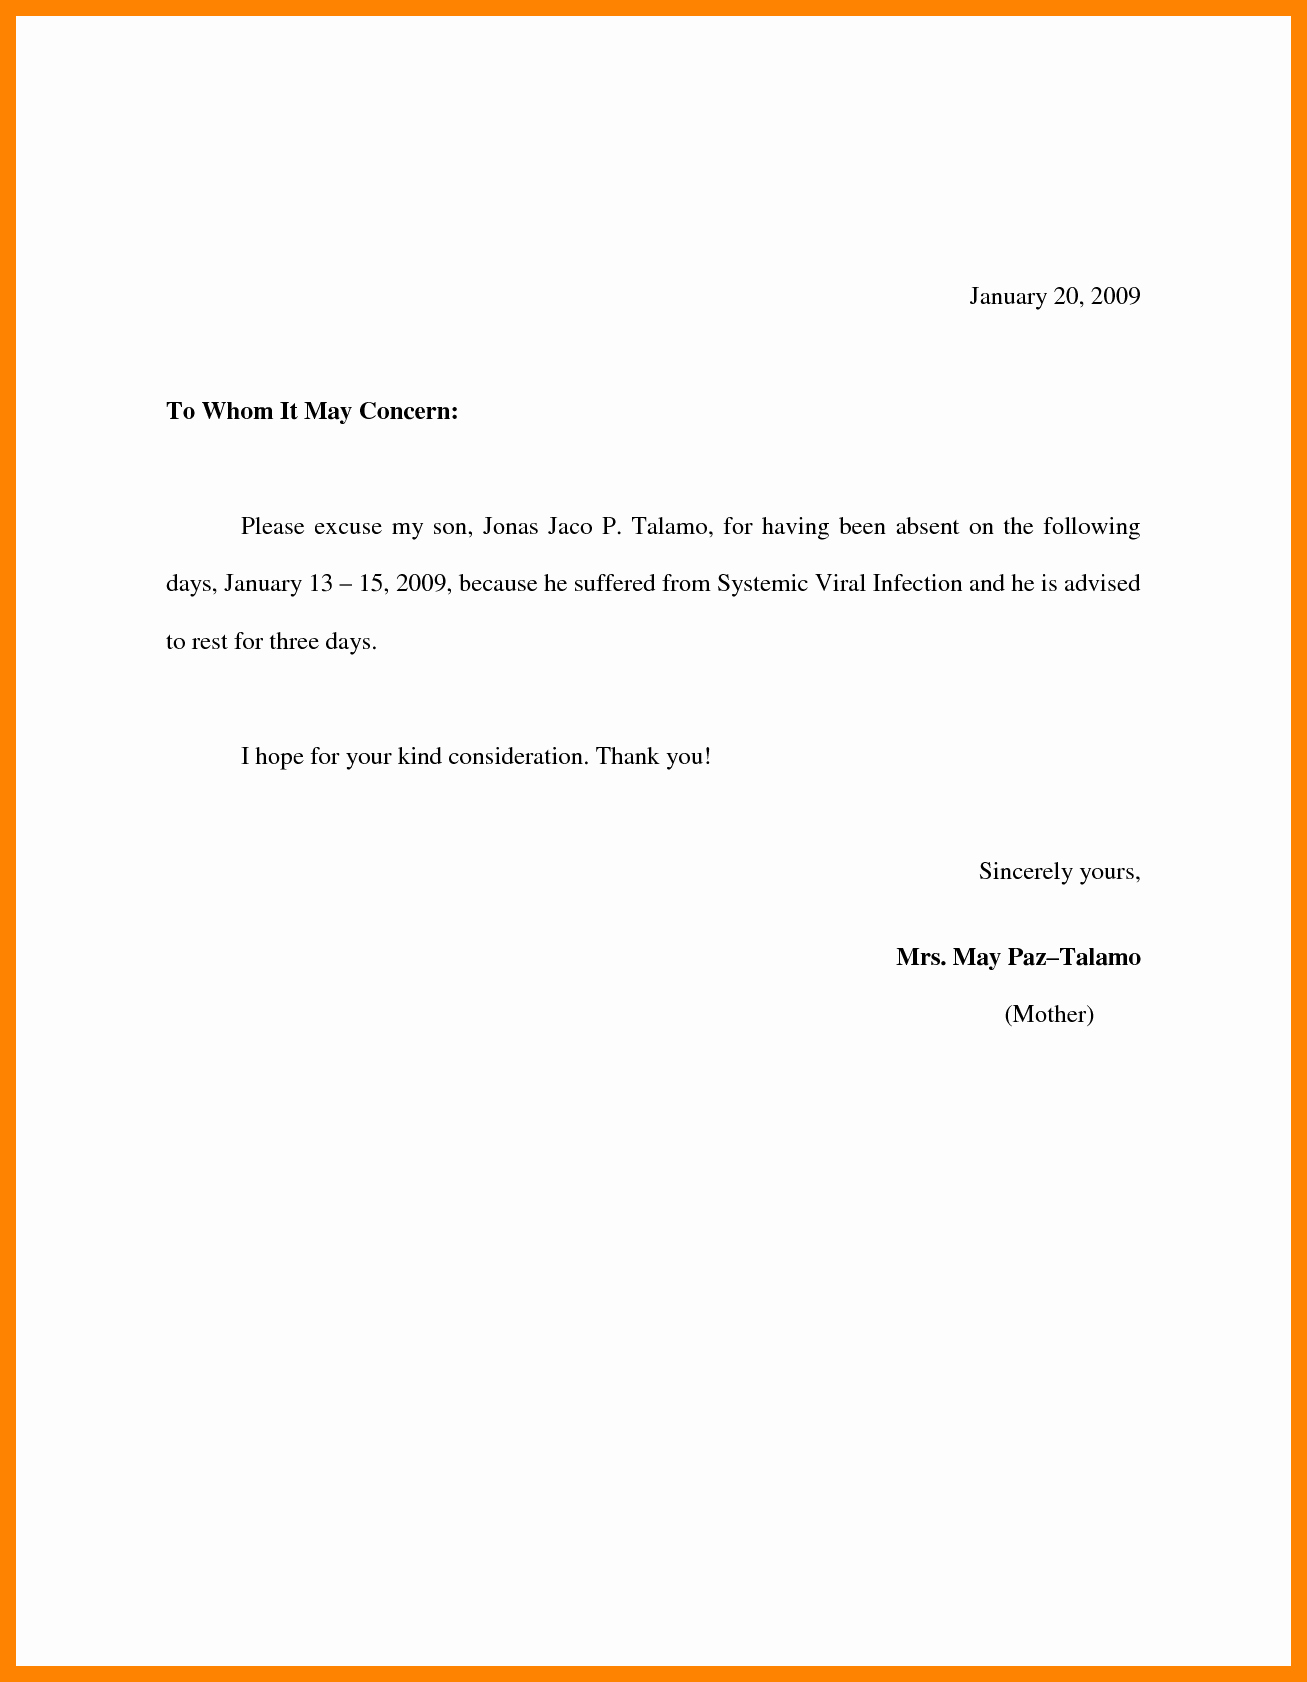 Excuse Absence From School Letter Elegant School Absence Excuses Letter format Excuse Letter for